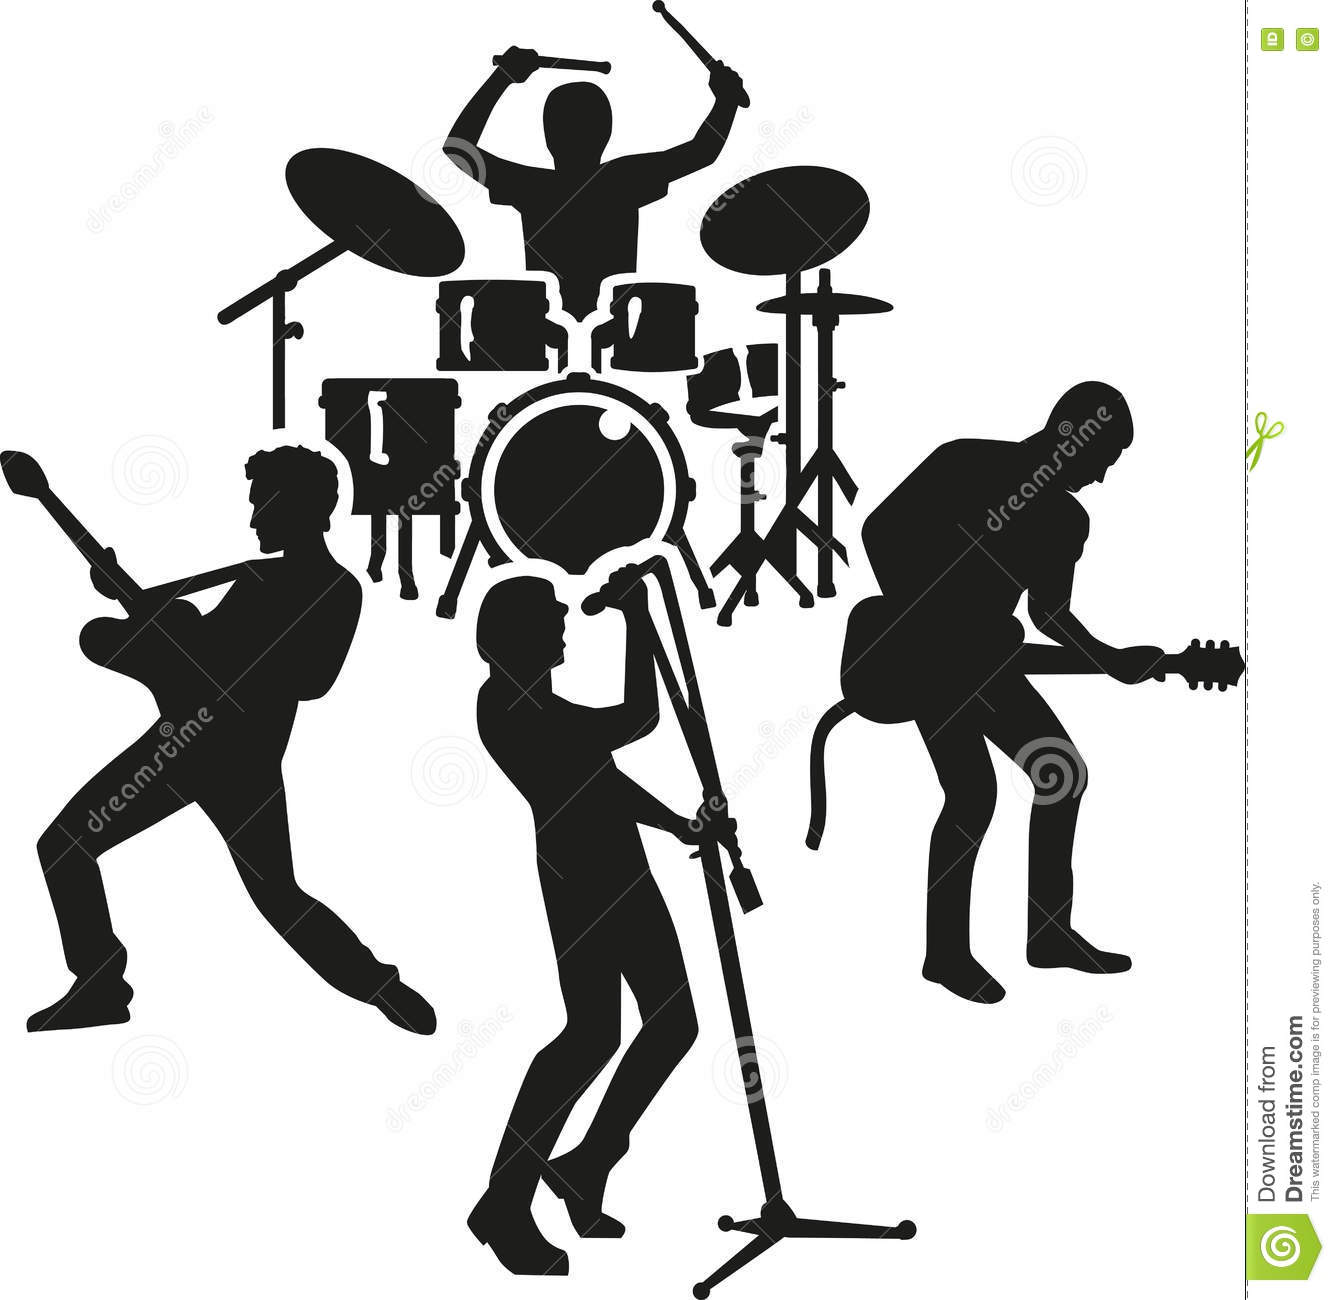 Rock band silhouette stock vector. Illustration of singer ...